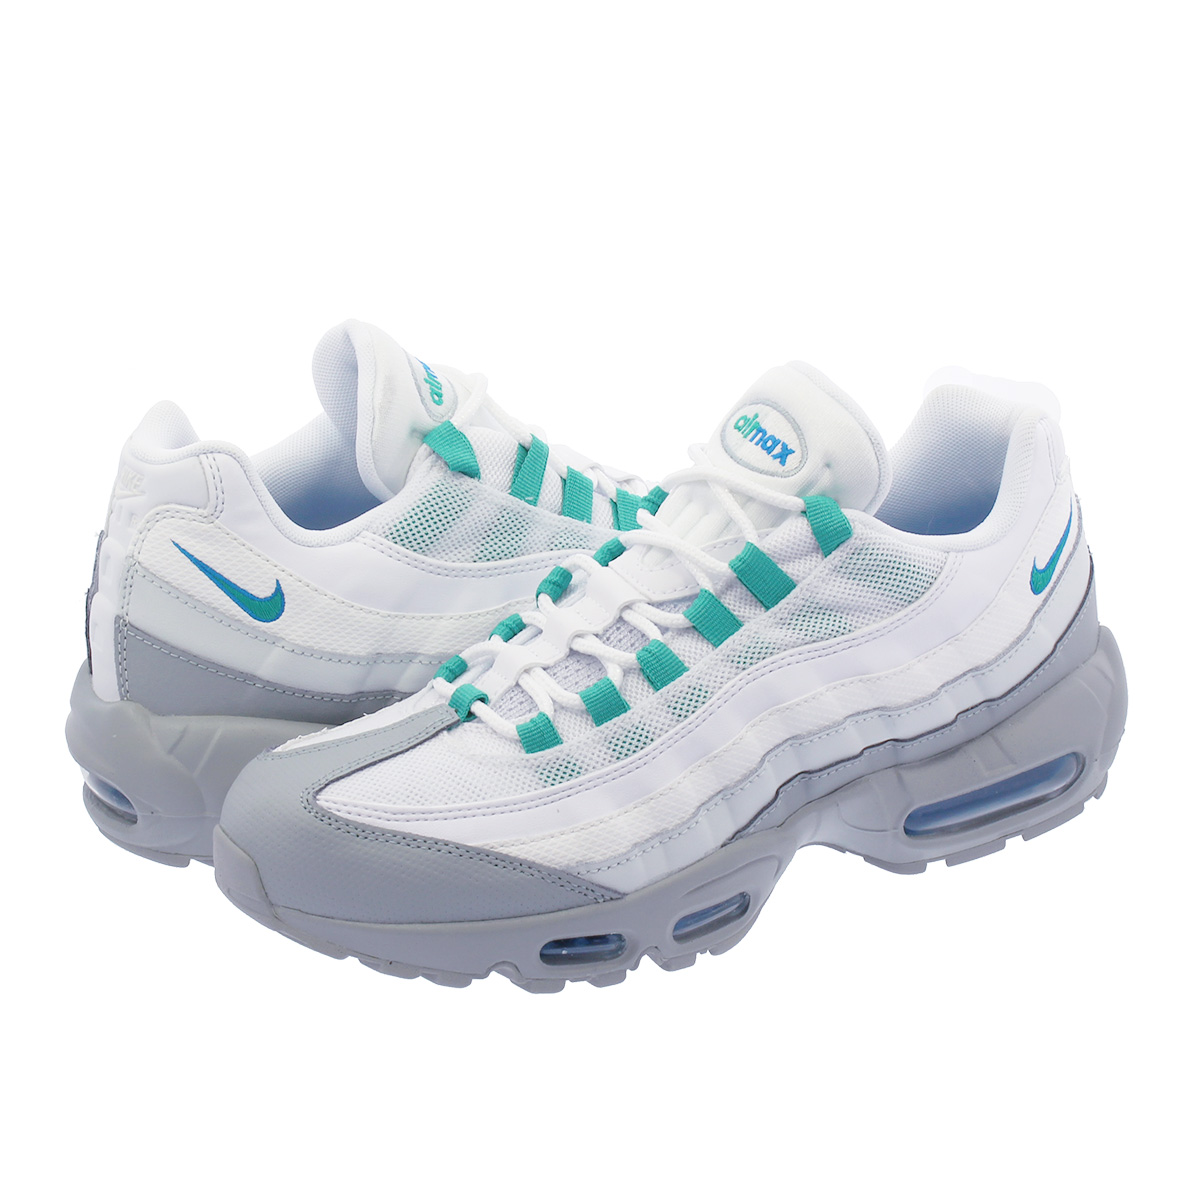 reputable site 7ea99 5450e SELECT SHOP LOWTEX NIKE AIR MAX 95 ESSENTIAL Kie Ney AMAX 95 essential  LIGHT PUMICECLEAR EMERALDWHITE 749,766-032  Rakuten Global Market